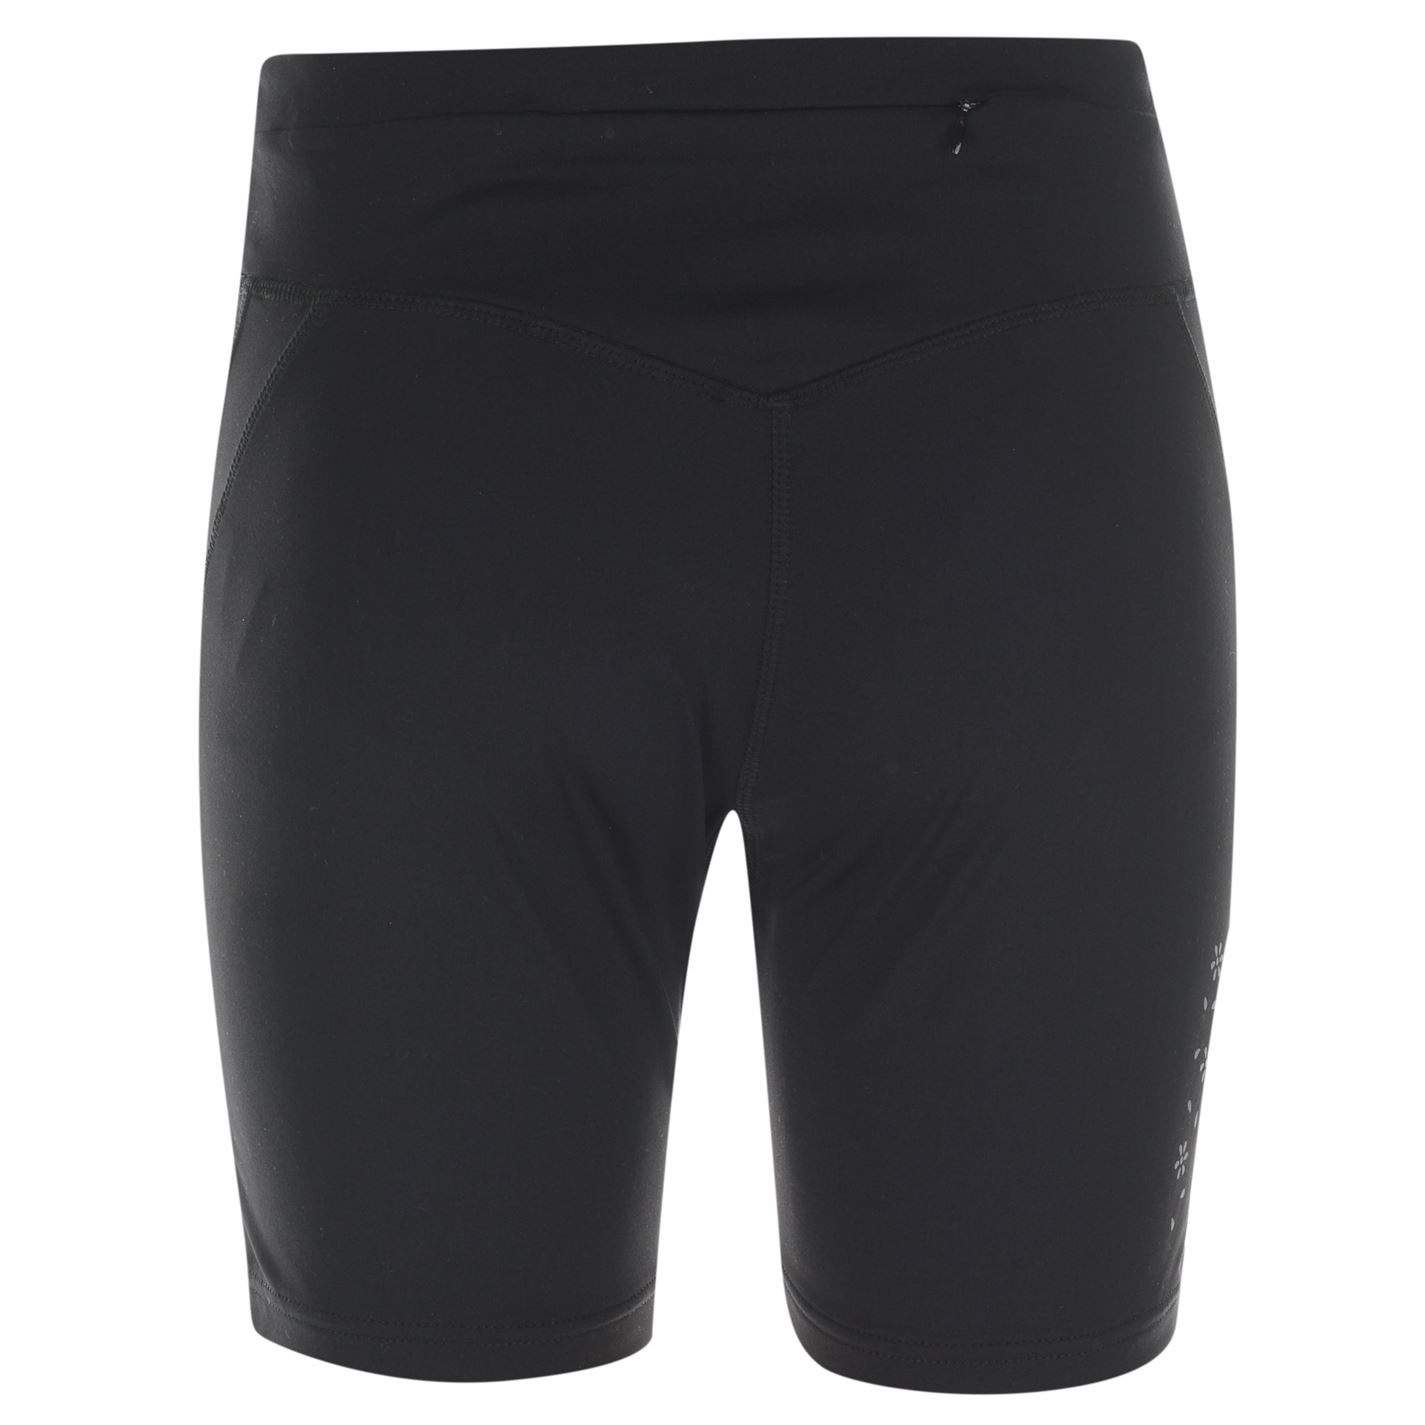 USA Pro Womens Ladies Training Shorts Bottoms Pants Elasticated ... a58a9372f855